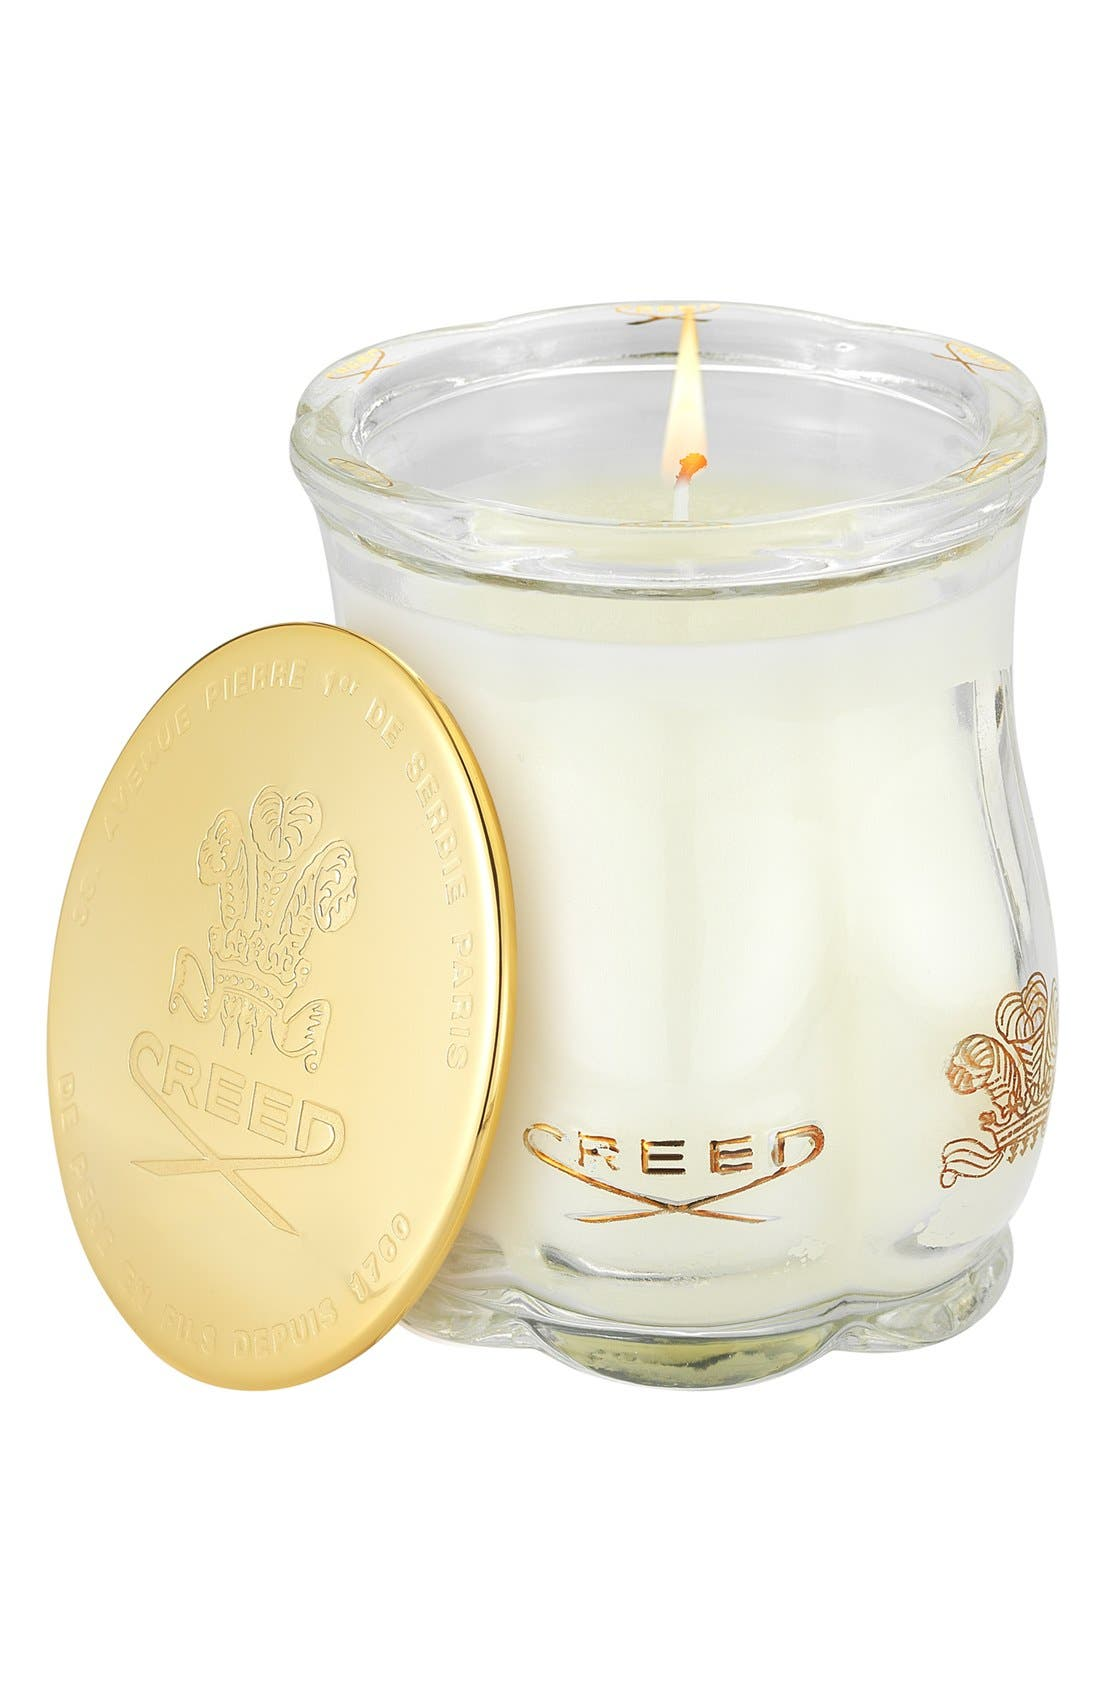 Alternate Image 1 Selected - Creed 'Spring Flower' Candle